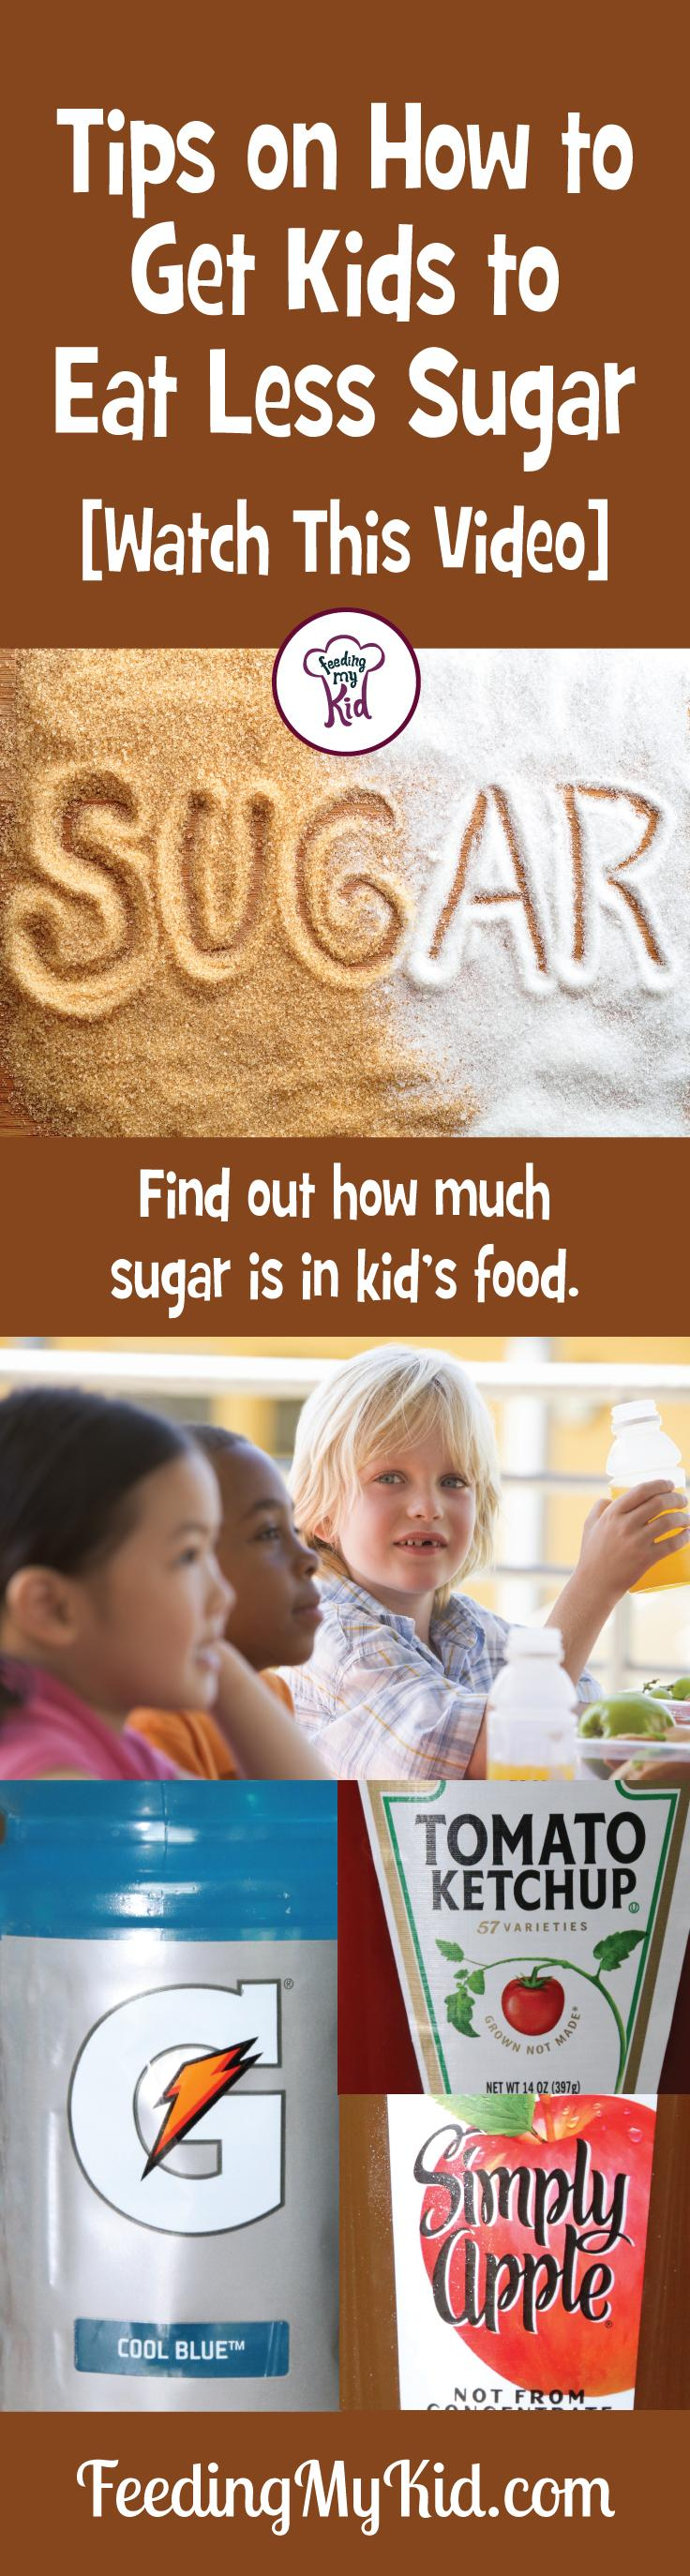 Check out one mom's experiment to see the amount of sugar in food & drinks marketed to us as healthy like apple juice, orange juice, sports drinks, etc.